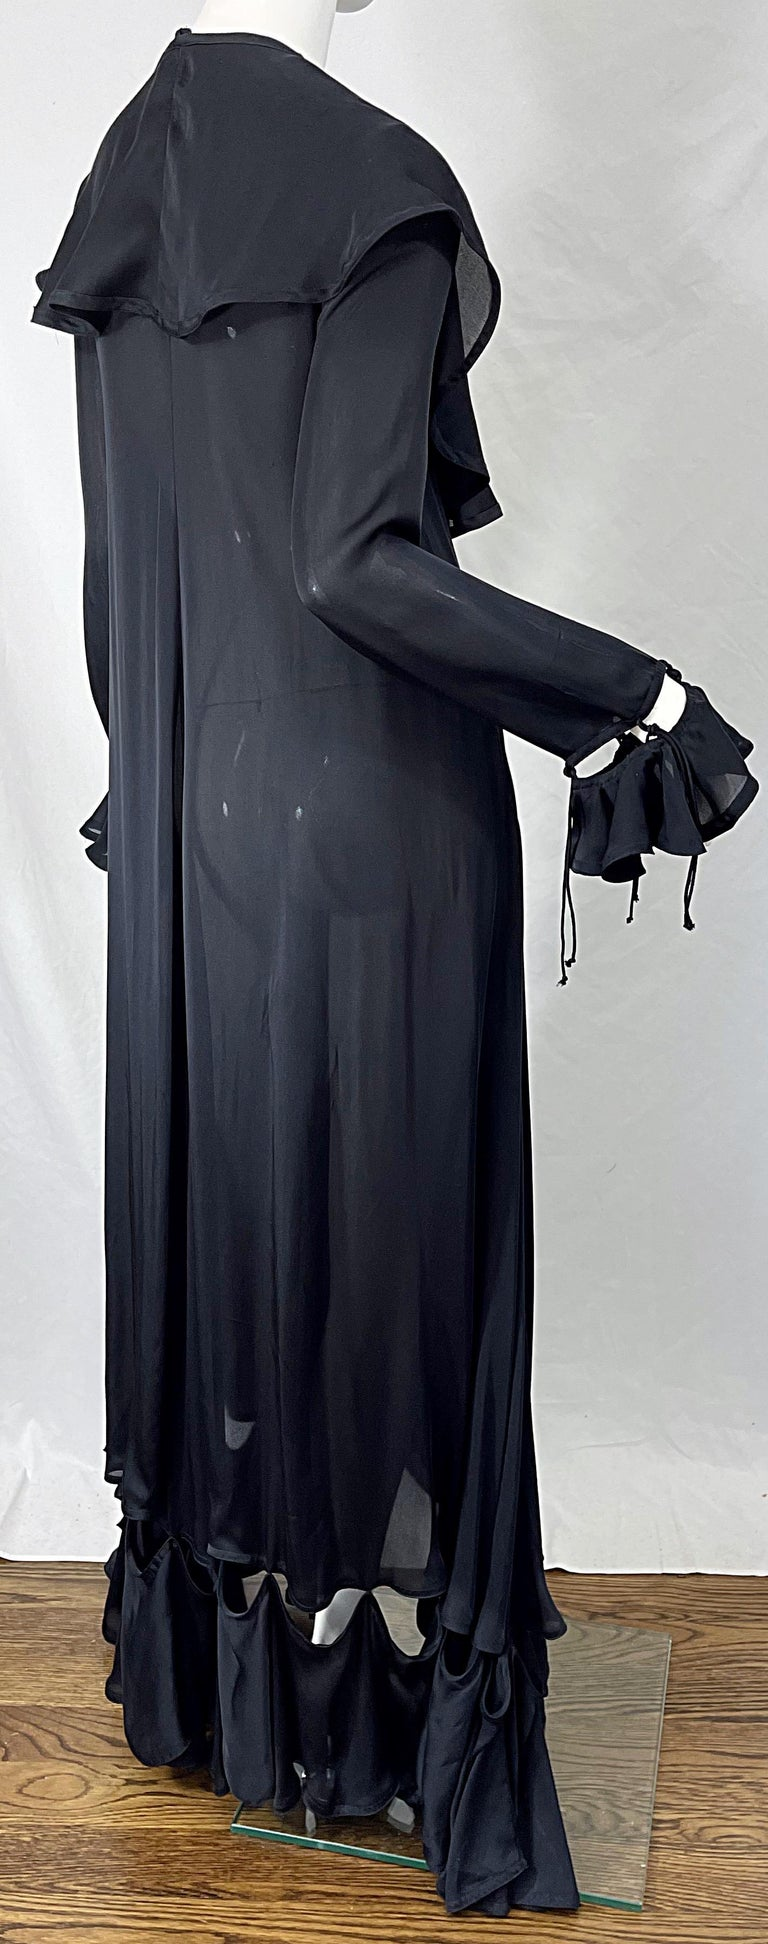 Yves Saint Laurent by Tom Ford Fall 2003 Runway Black Silk Chiffon Gown Size 38 For Sale 6